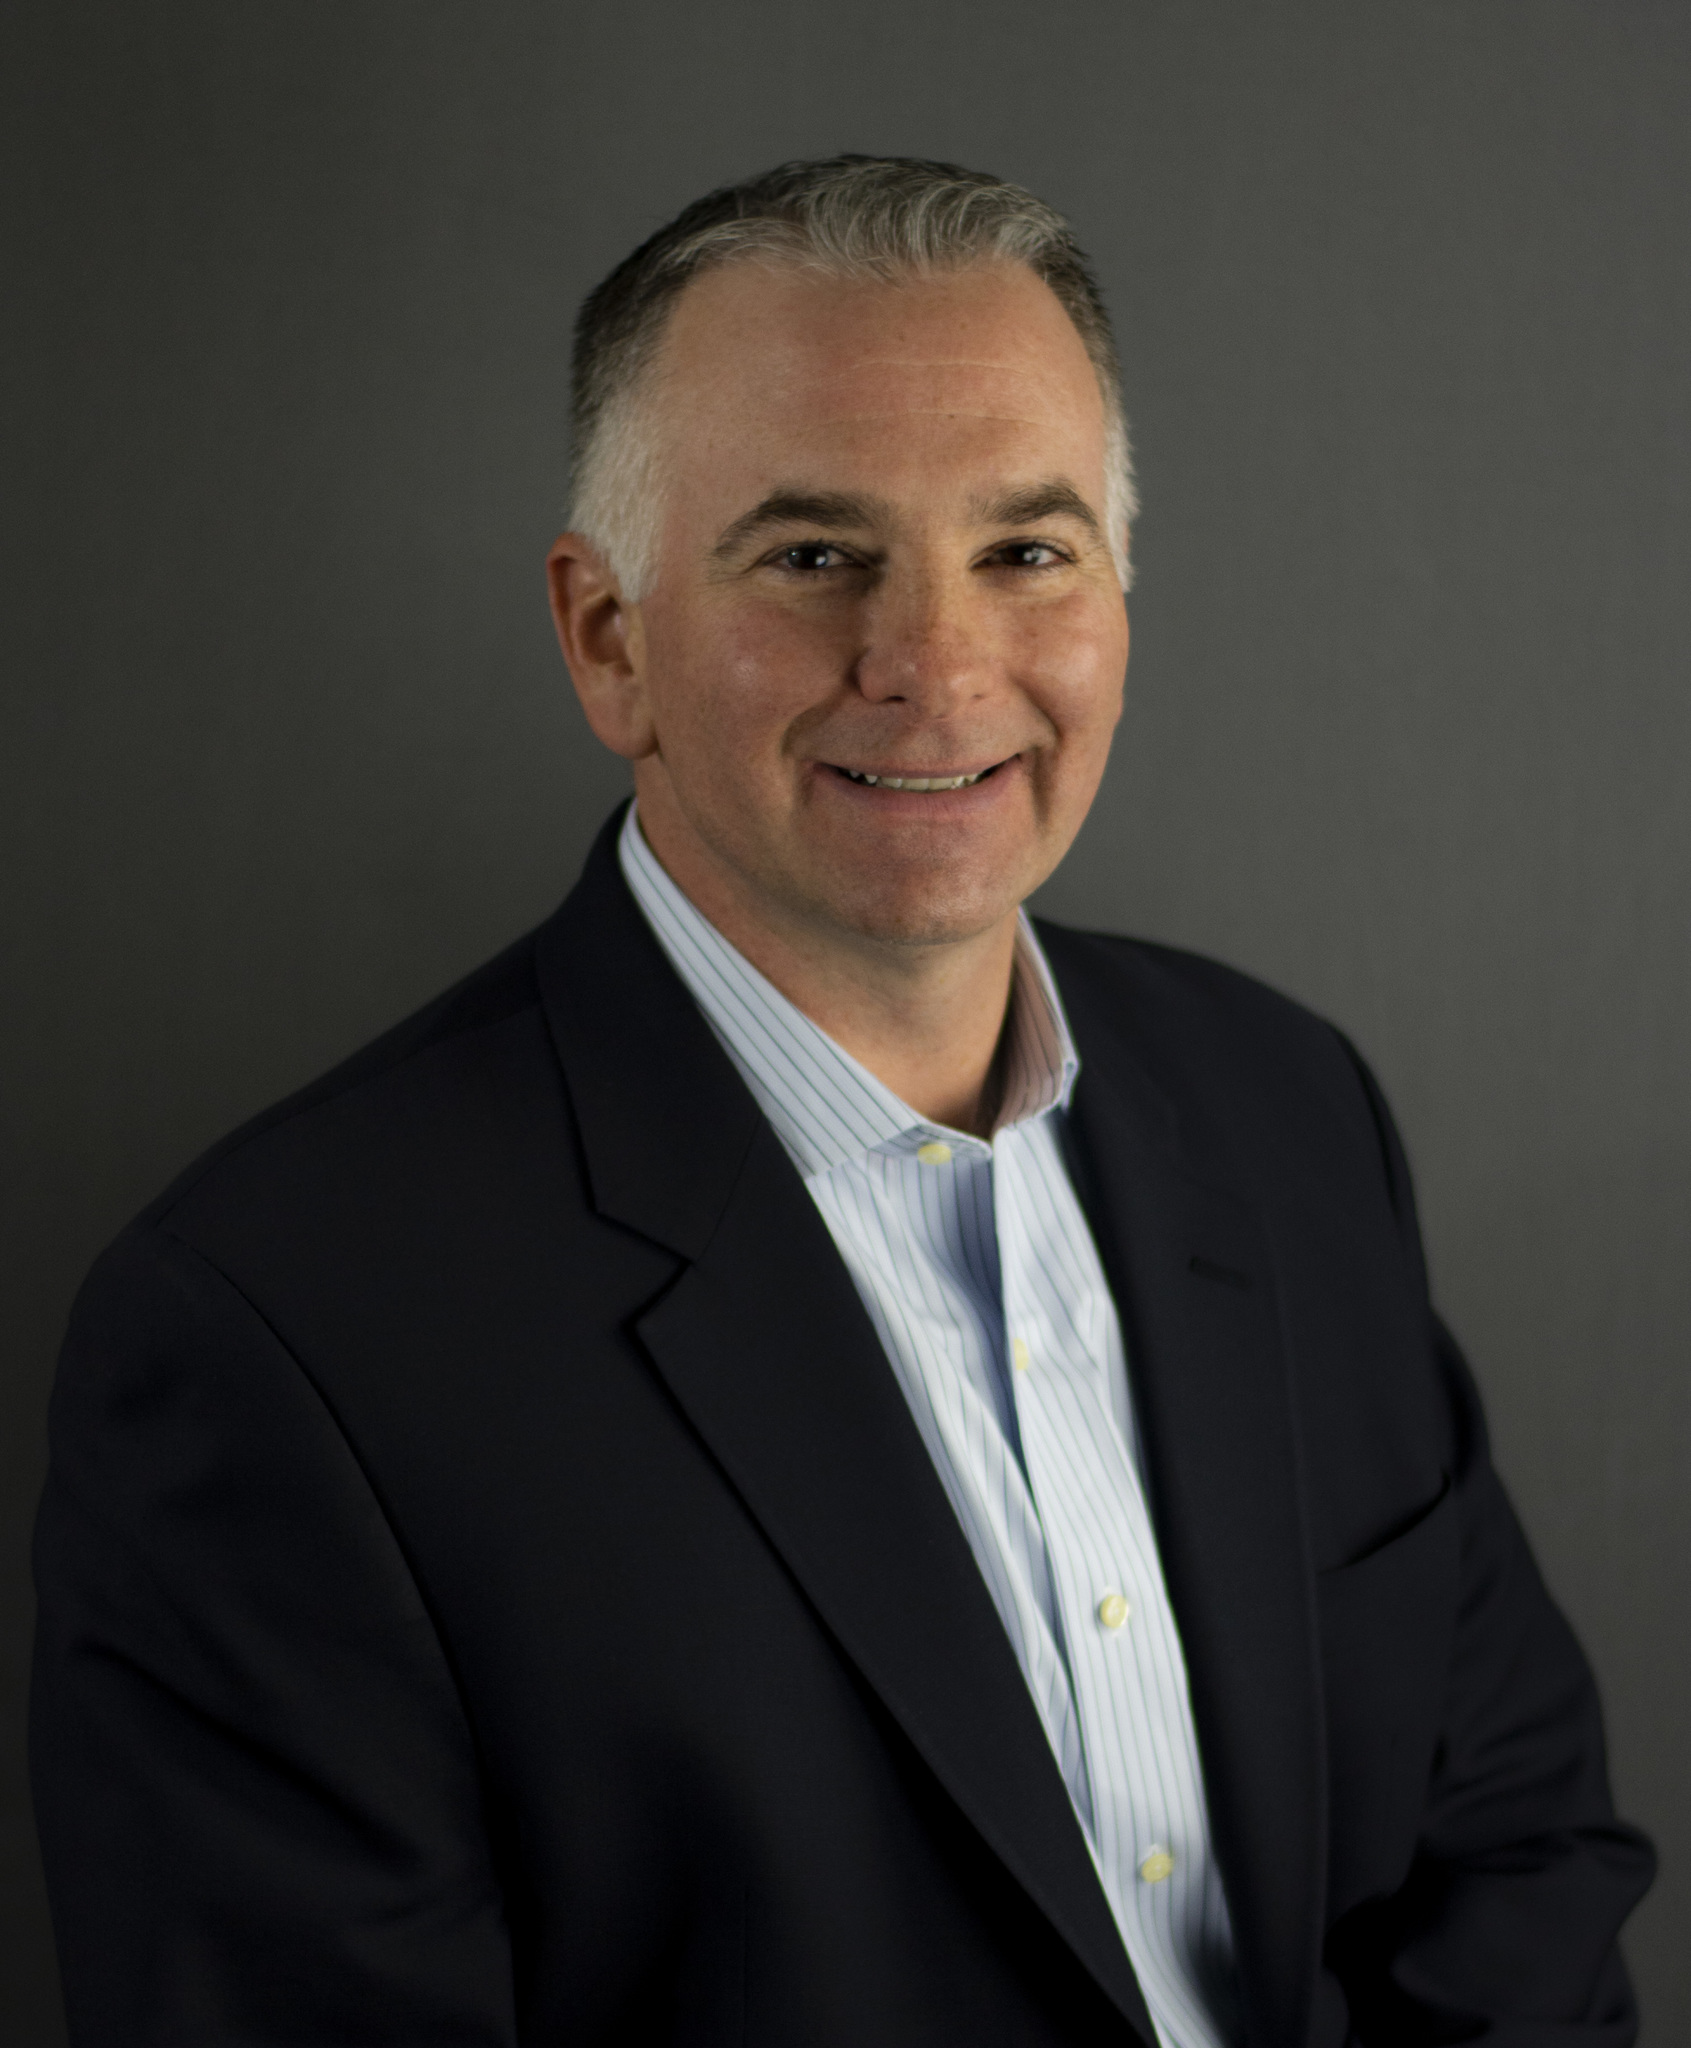 Brian Siebert, CFO of Bridge Office and Commercial Real Estate